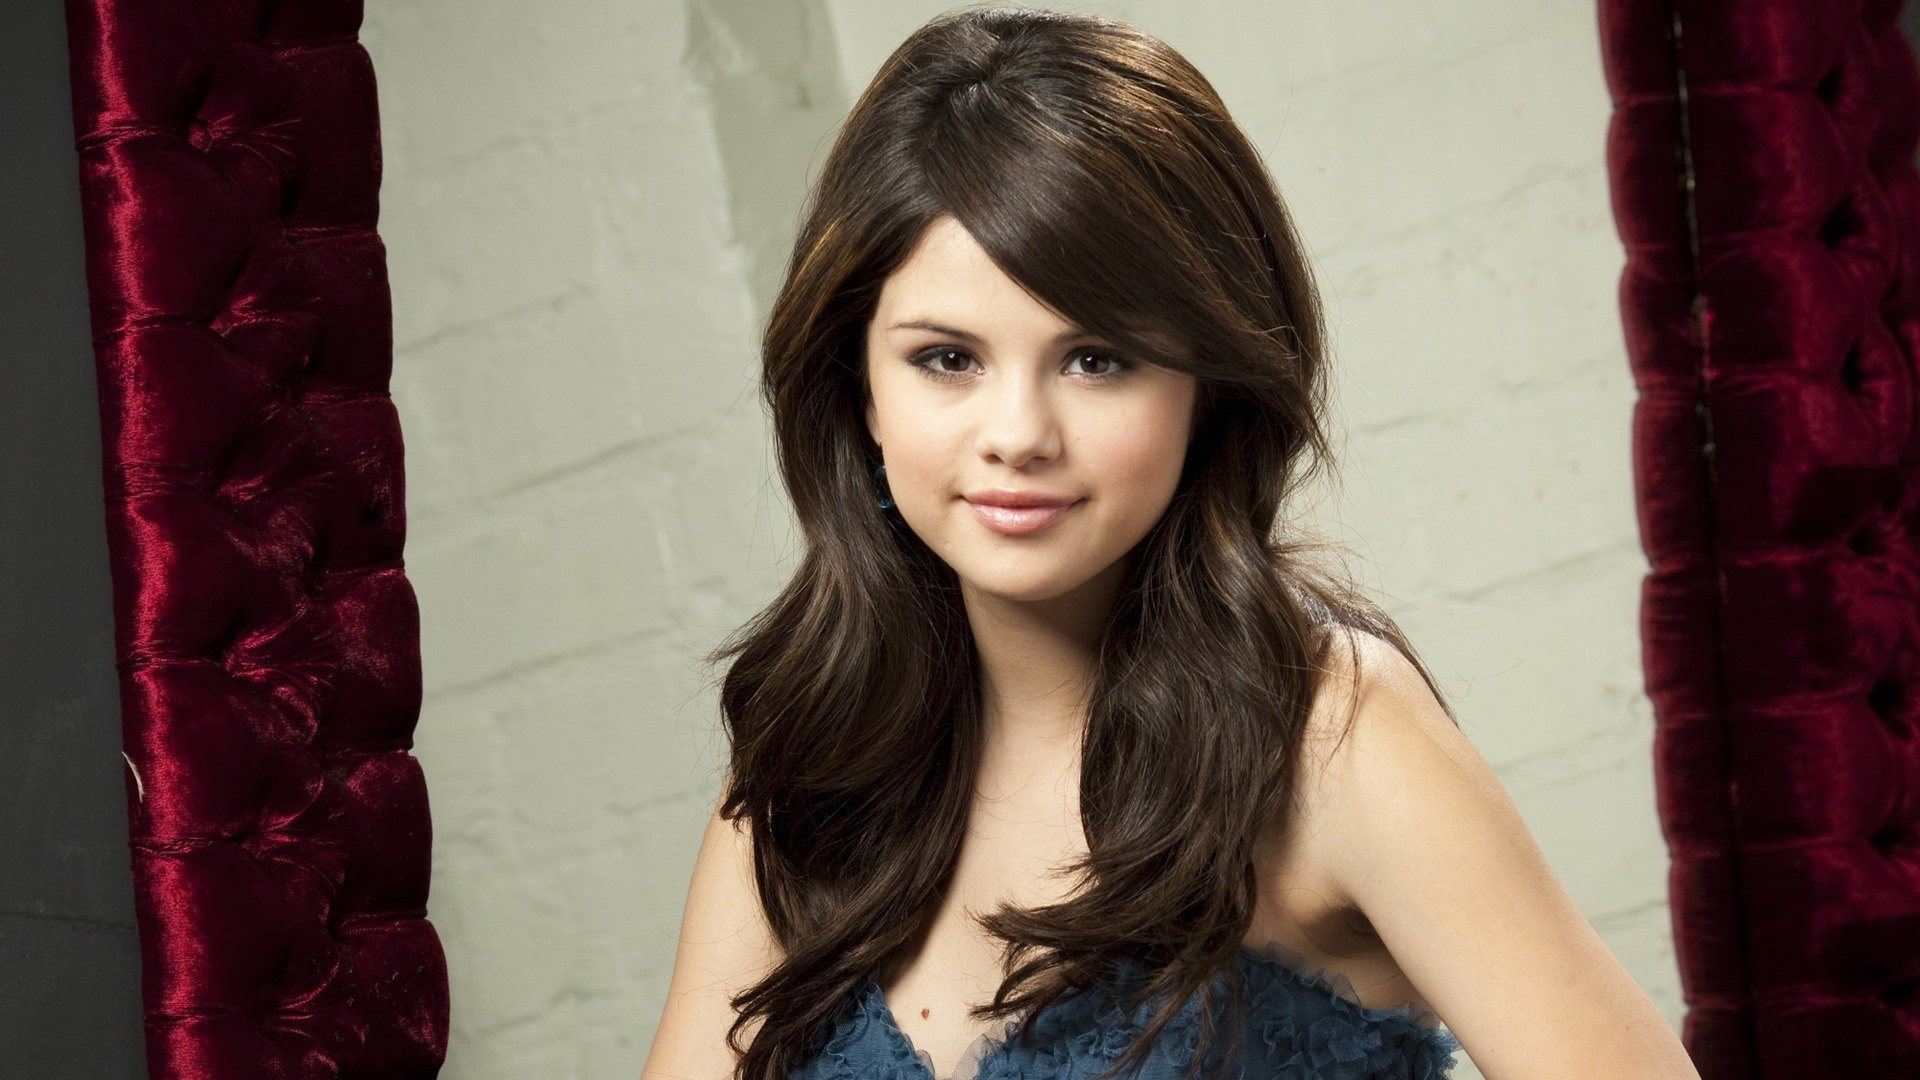 selena gomez beautiful hd image